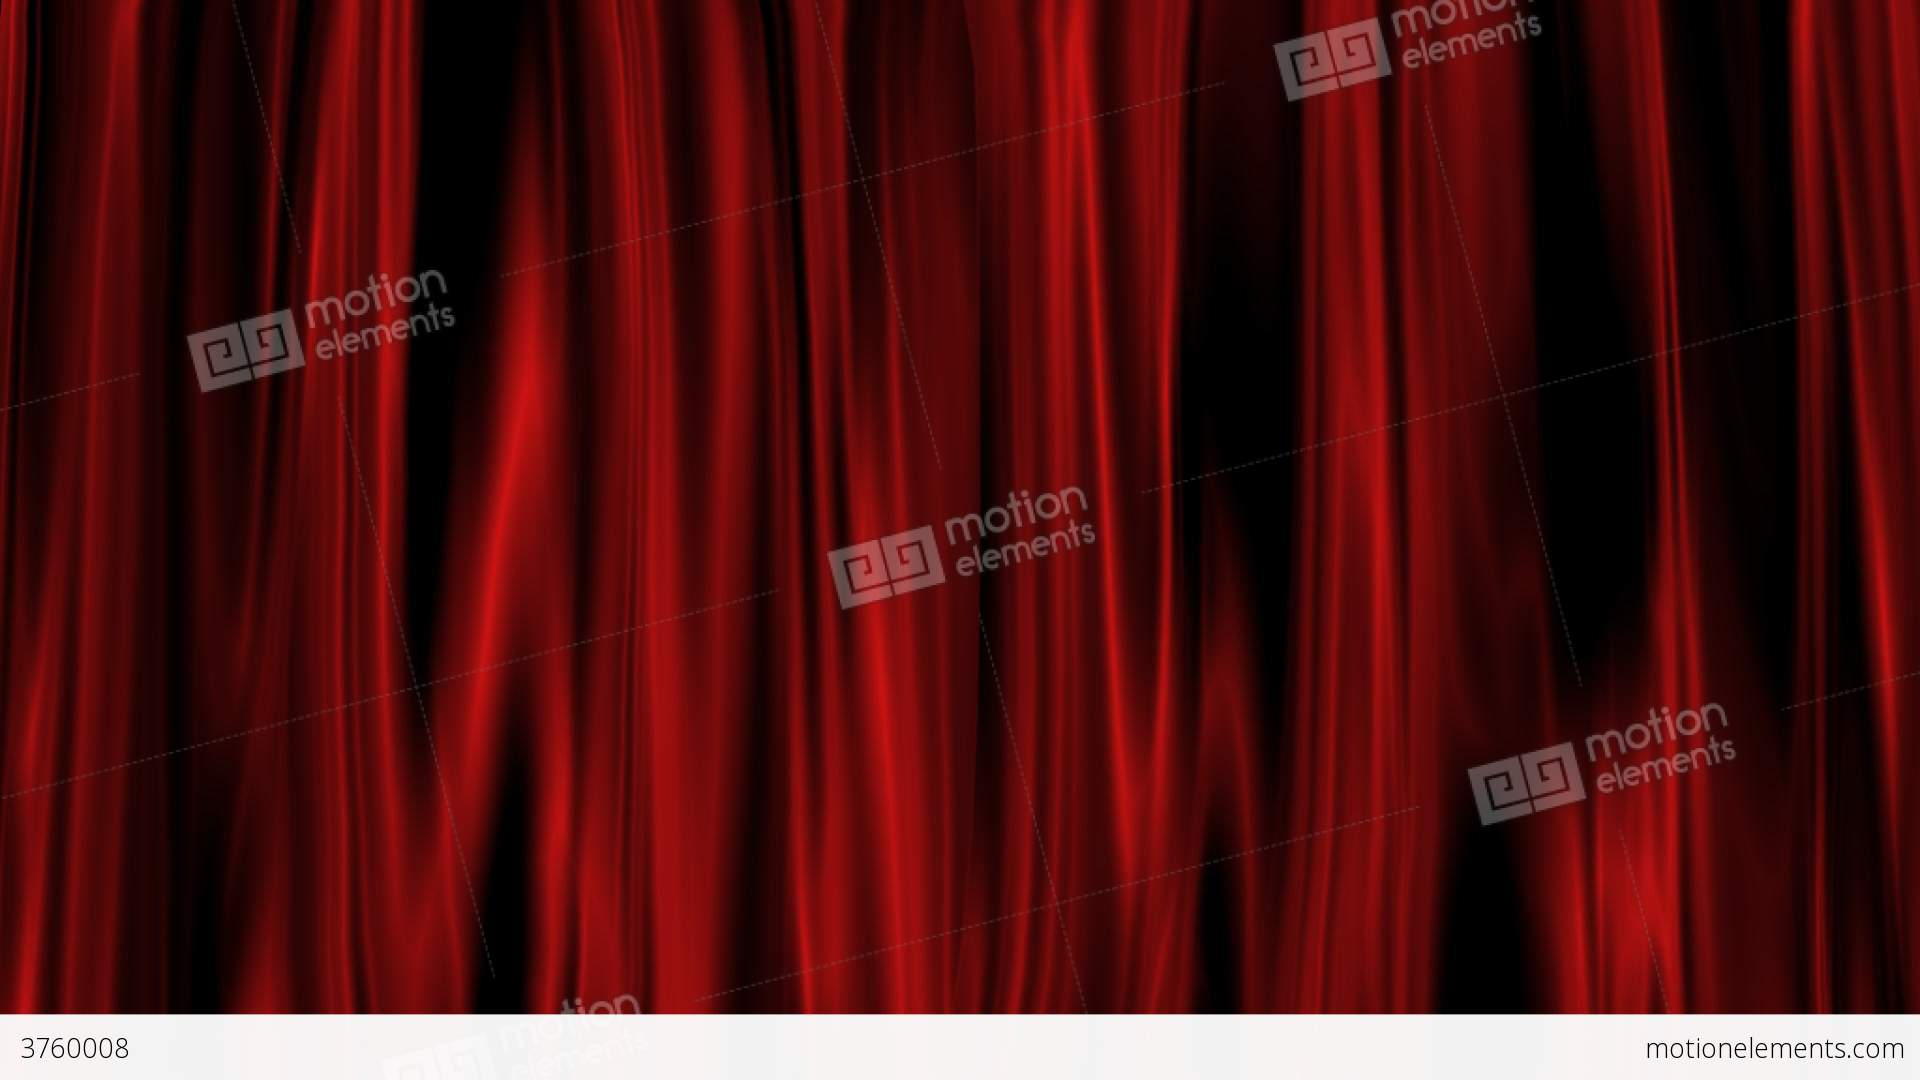 Opening and closing red curtain stock animation royalty free stock - Red Curtain With Alpha Channel Stock Animation Royalty Free Stock Animation Library 3760008